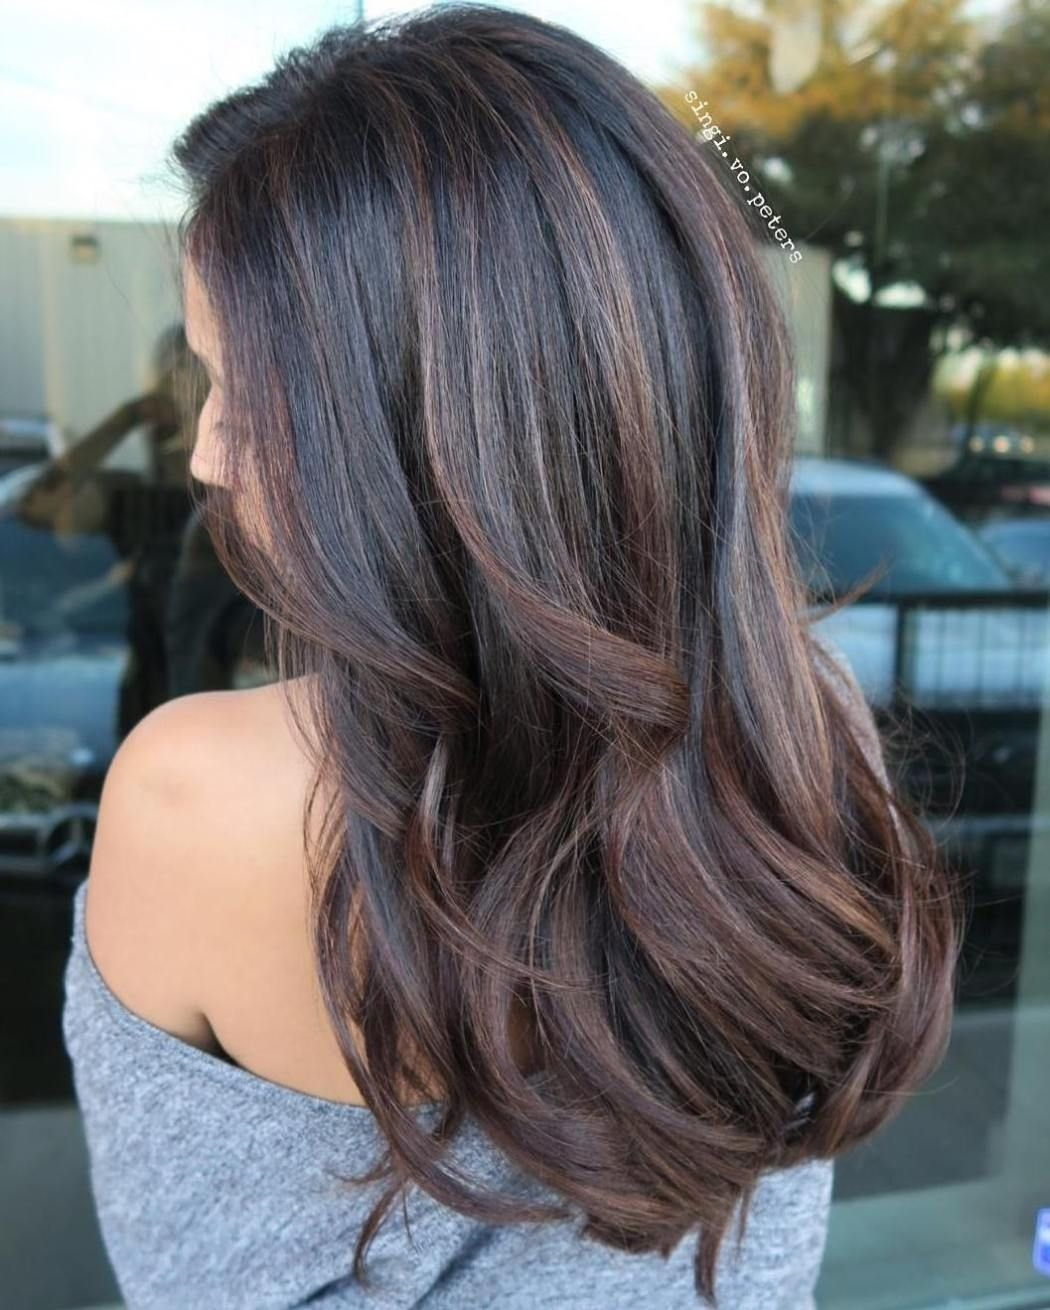 10 Awesome Hair Dye Ideas For Black Hair best balayage hair color ideas 70 flattering styles for 2018 11 2021